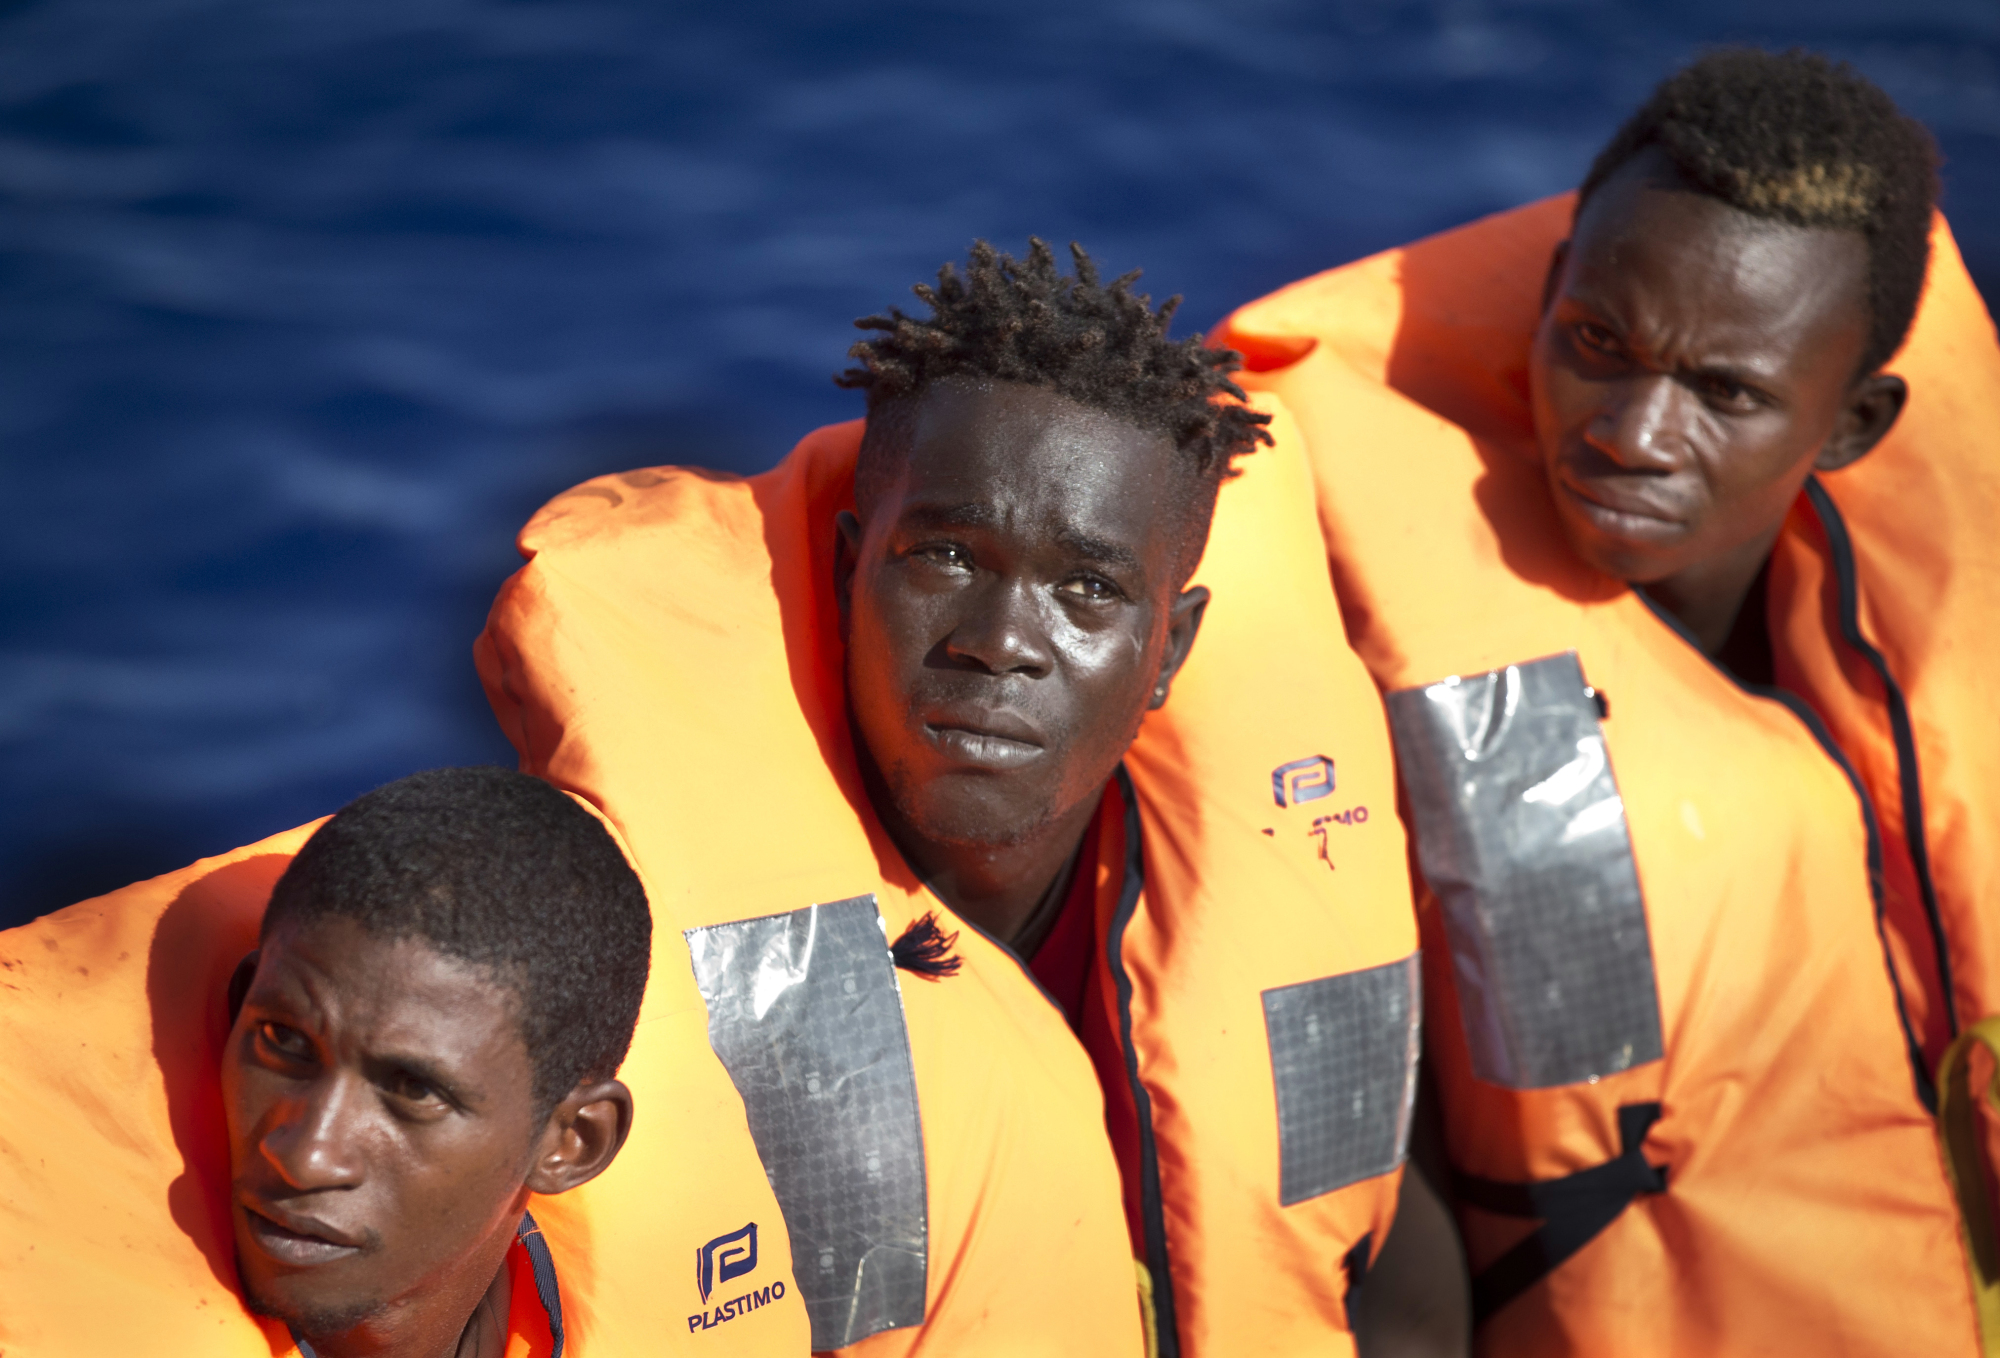 African migrants rescued by an oil rig supply ship are transferred to the Aquarius vessel of SOS Mediterranee and MSF (Doctors Without Borders) NGOs, in the Mediterranean Sea north of Libya Wednesday. | AP